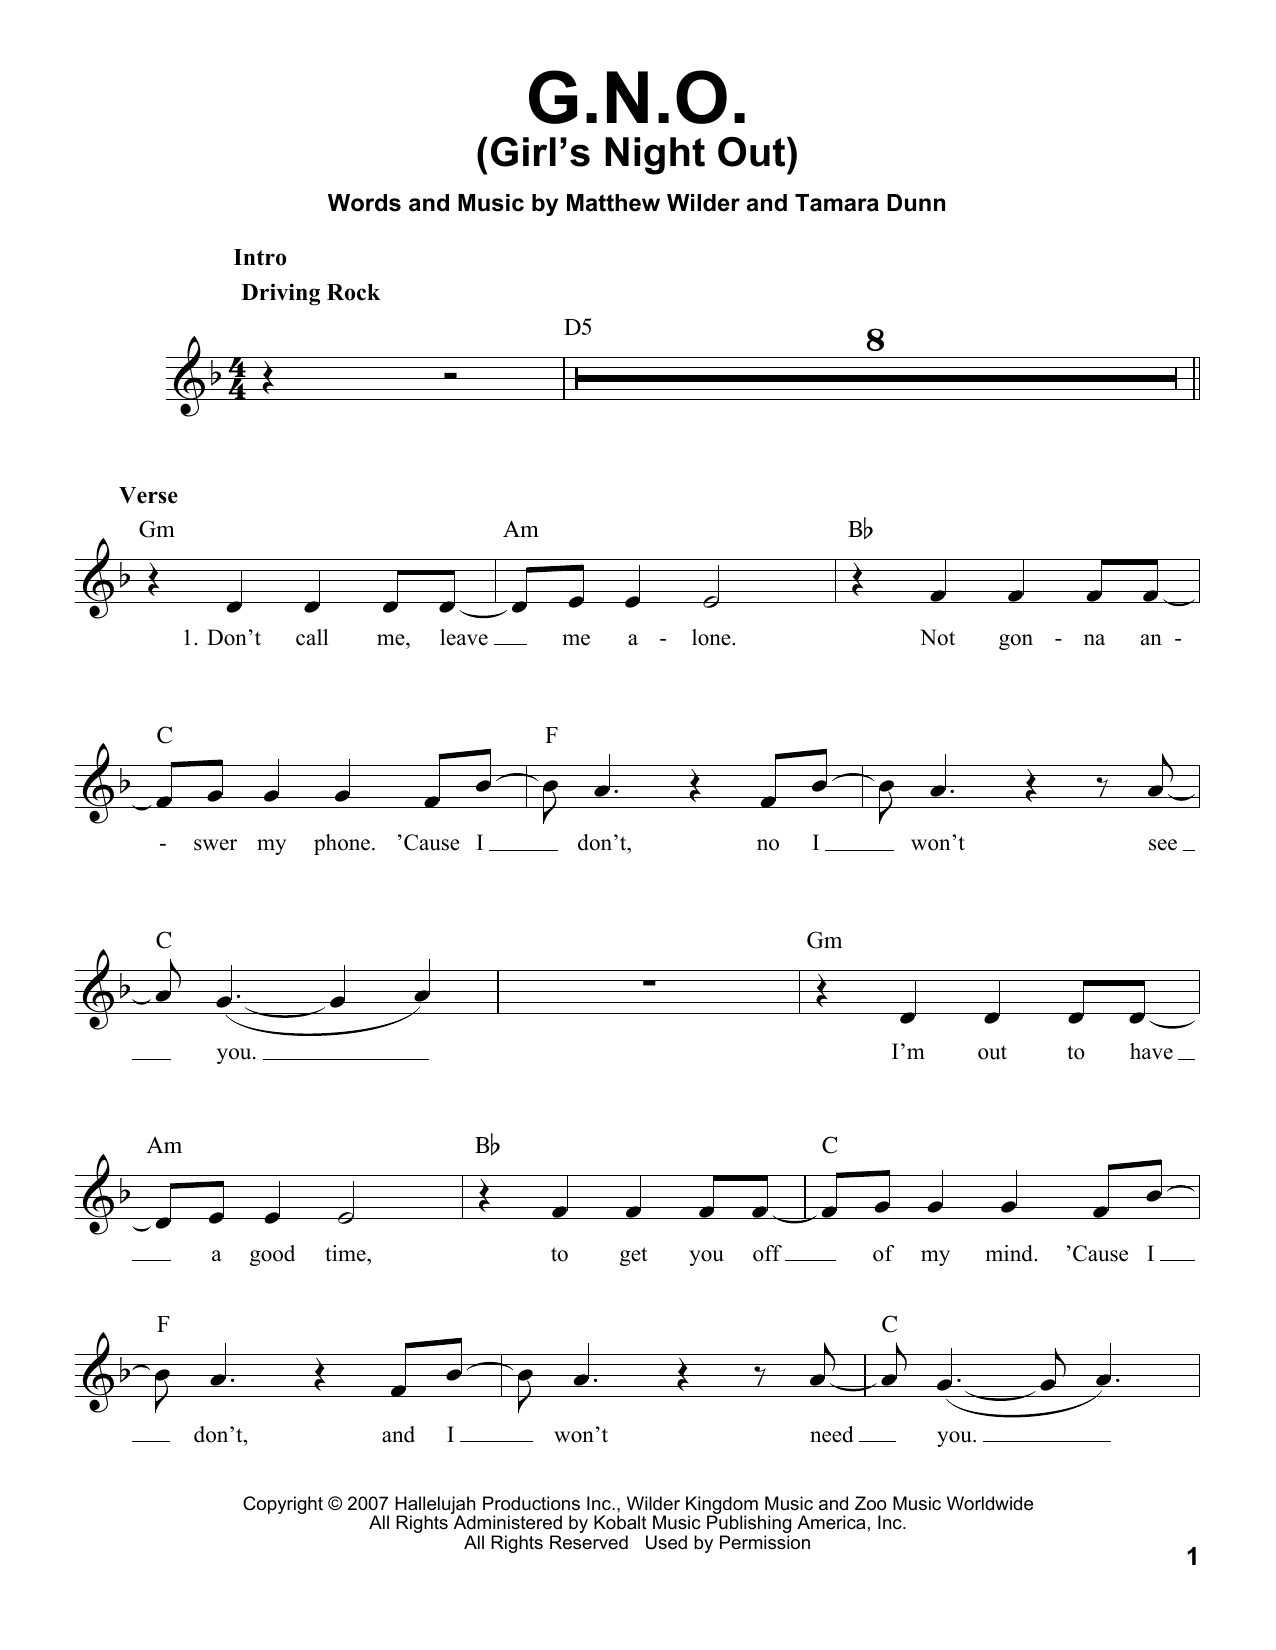 G.N.O. (Girl's Night Out) Sheet Music